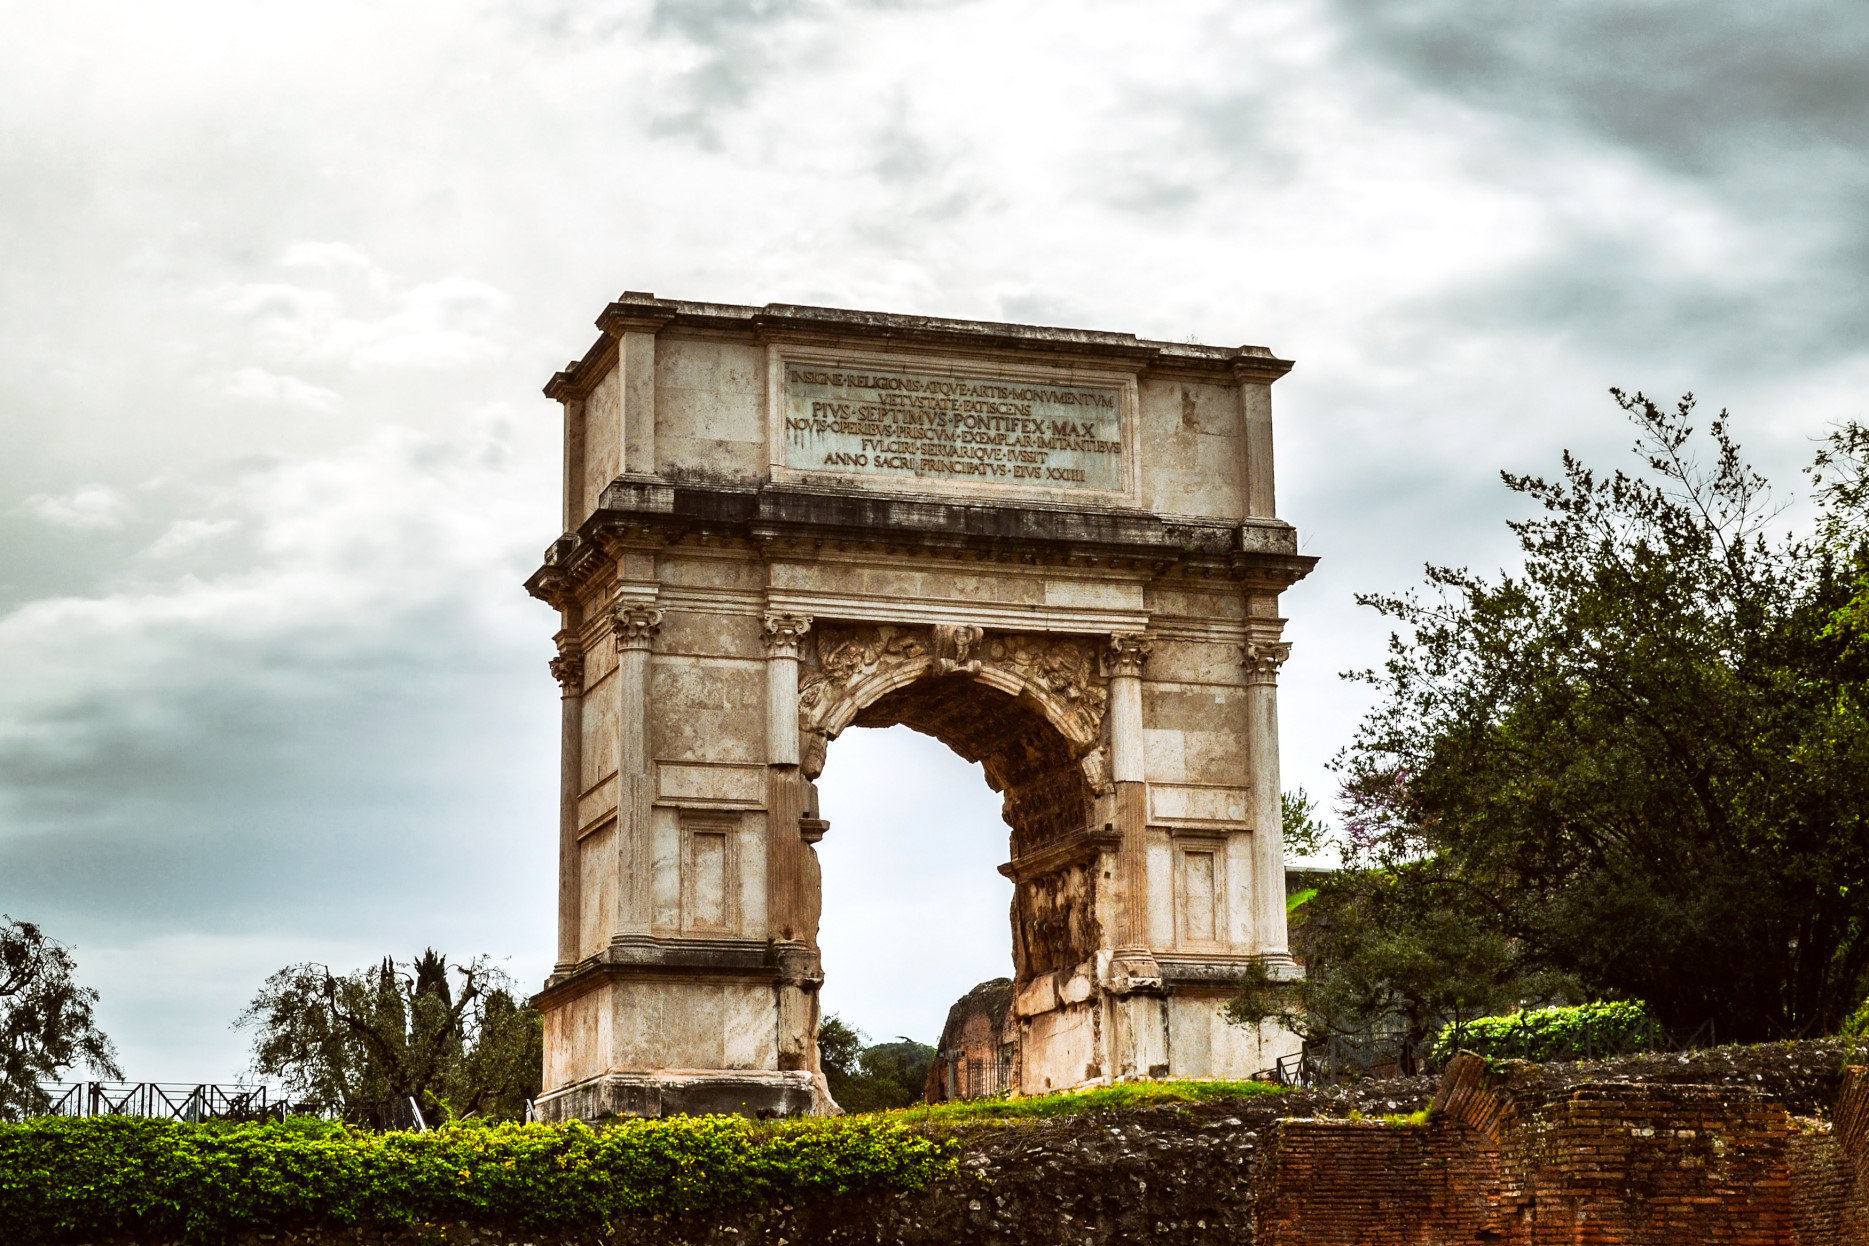 The Arch of Titus in Rome, Italy. Rome landmark.